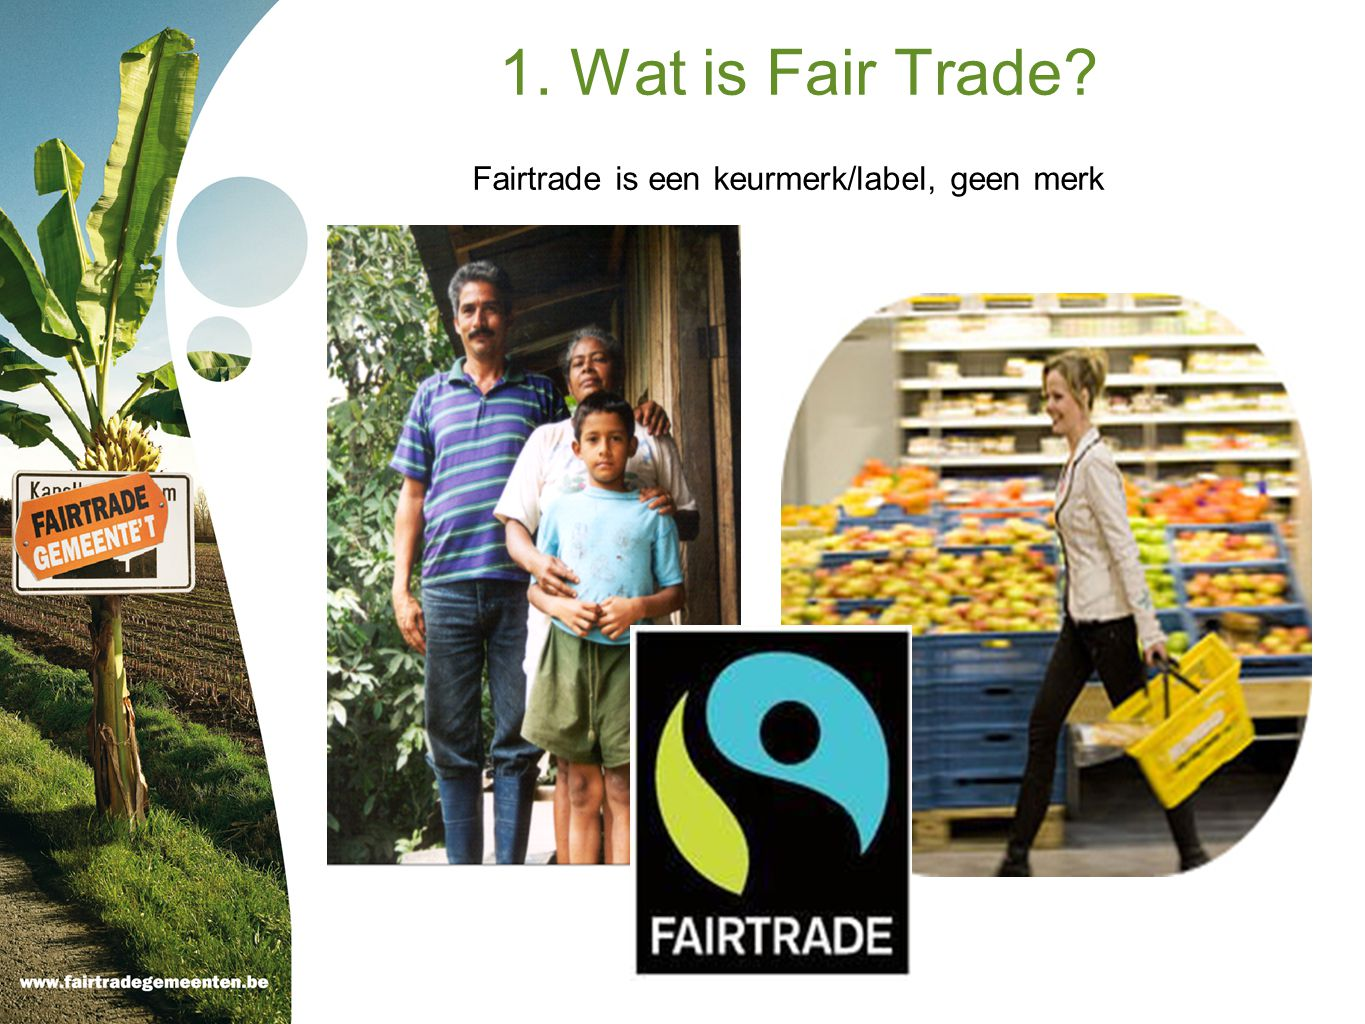 Fairtrade is een keurmerk/label, geen merk